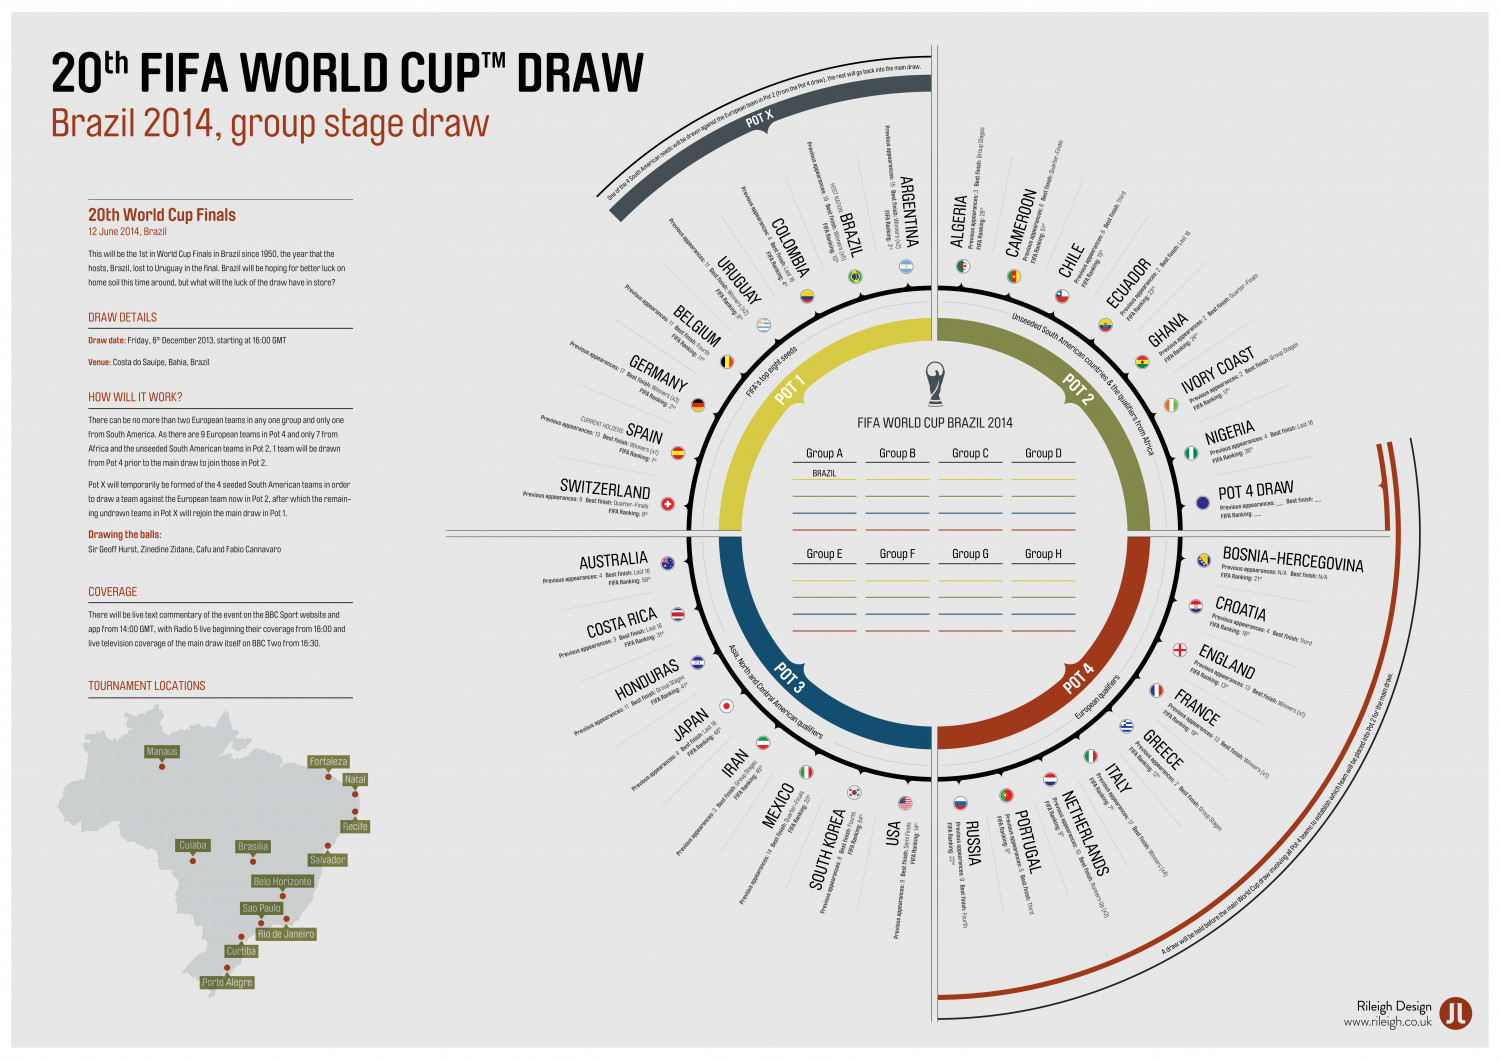 20th FIFA World Cup™ Draw Infographic